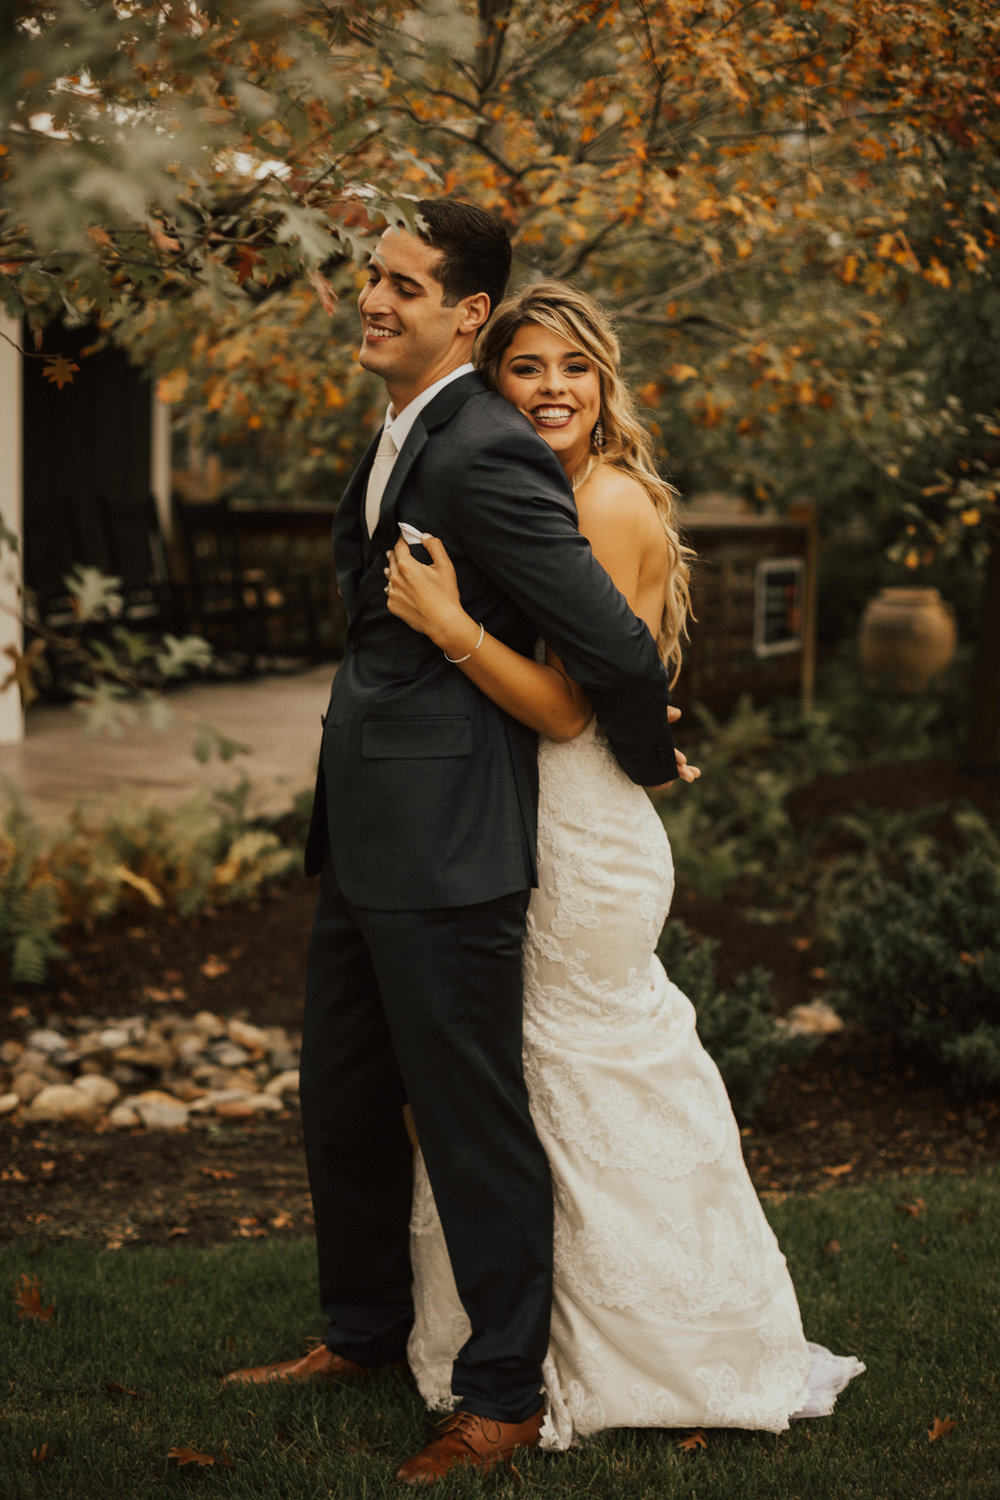 Nashville Wedding Photography by Saul Cervantes Photography-107.jpg